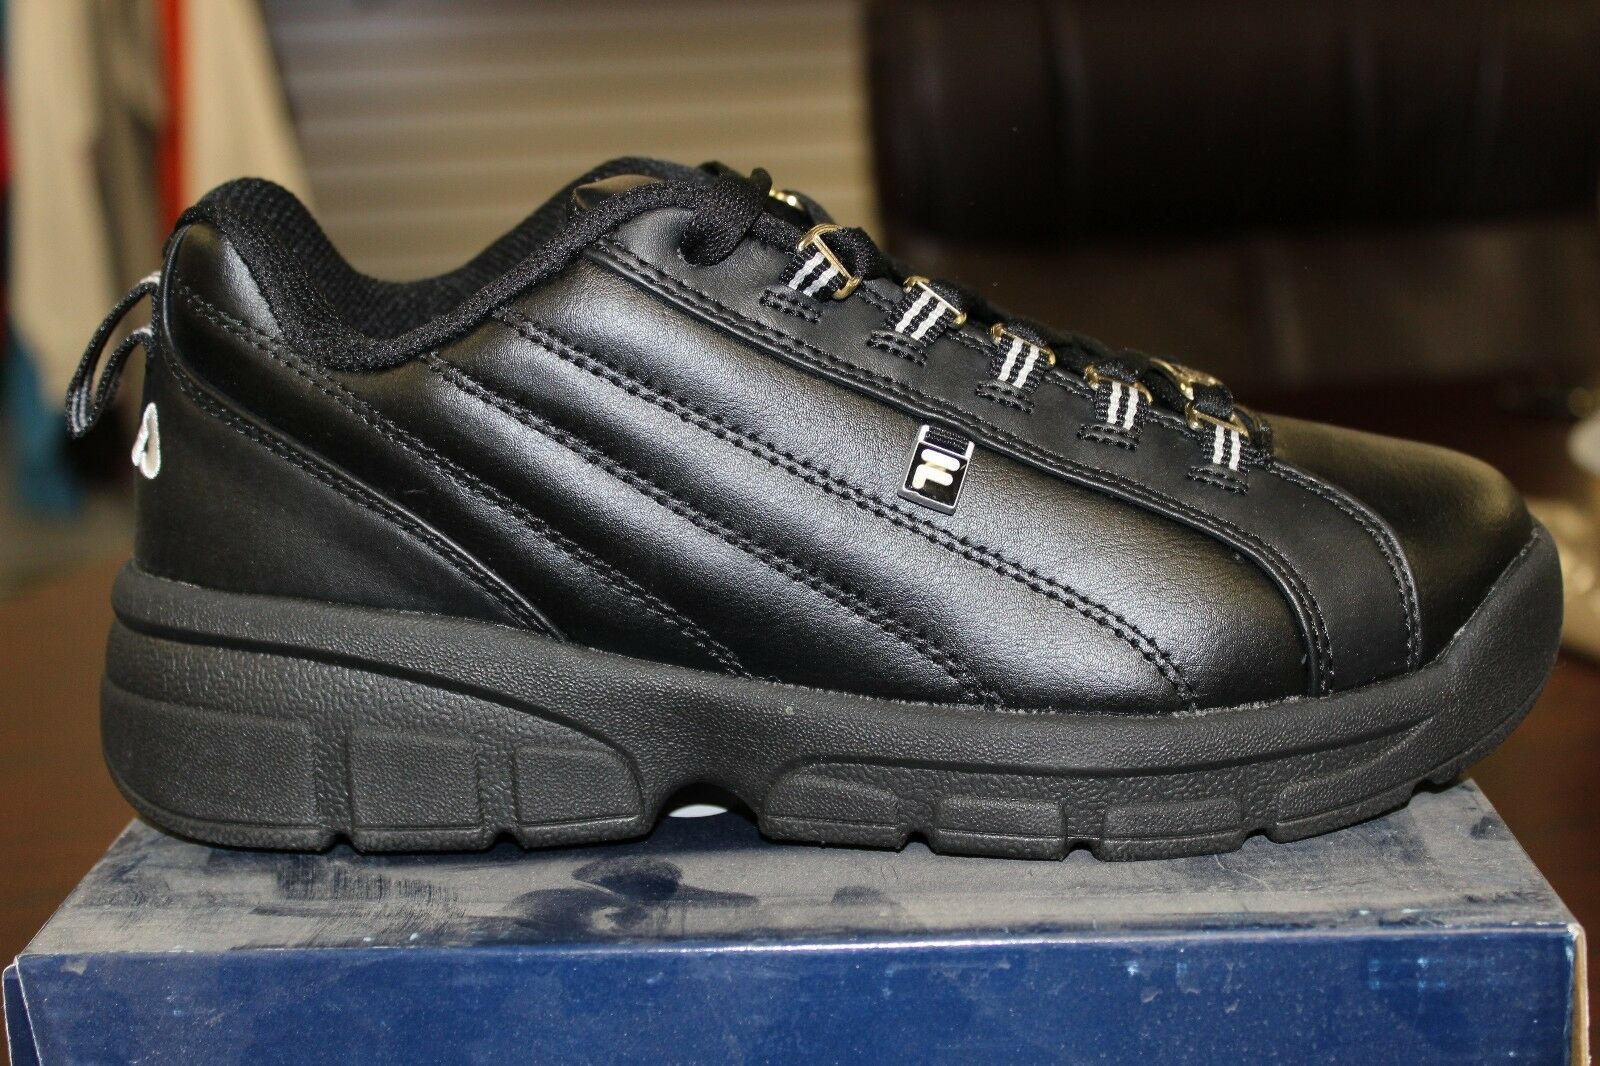 Fila Exchange 2K10 Black Metallic Silver Brand New in Box